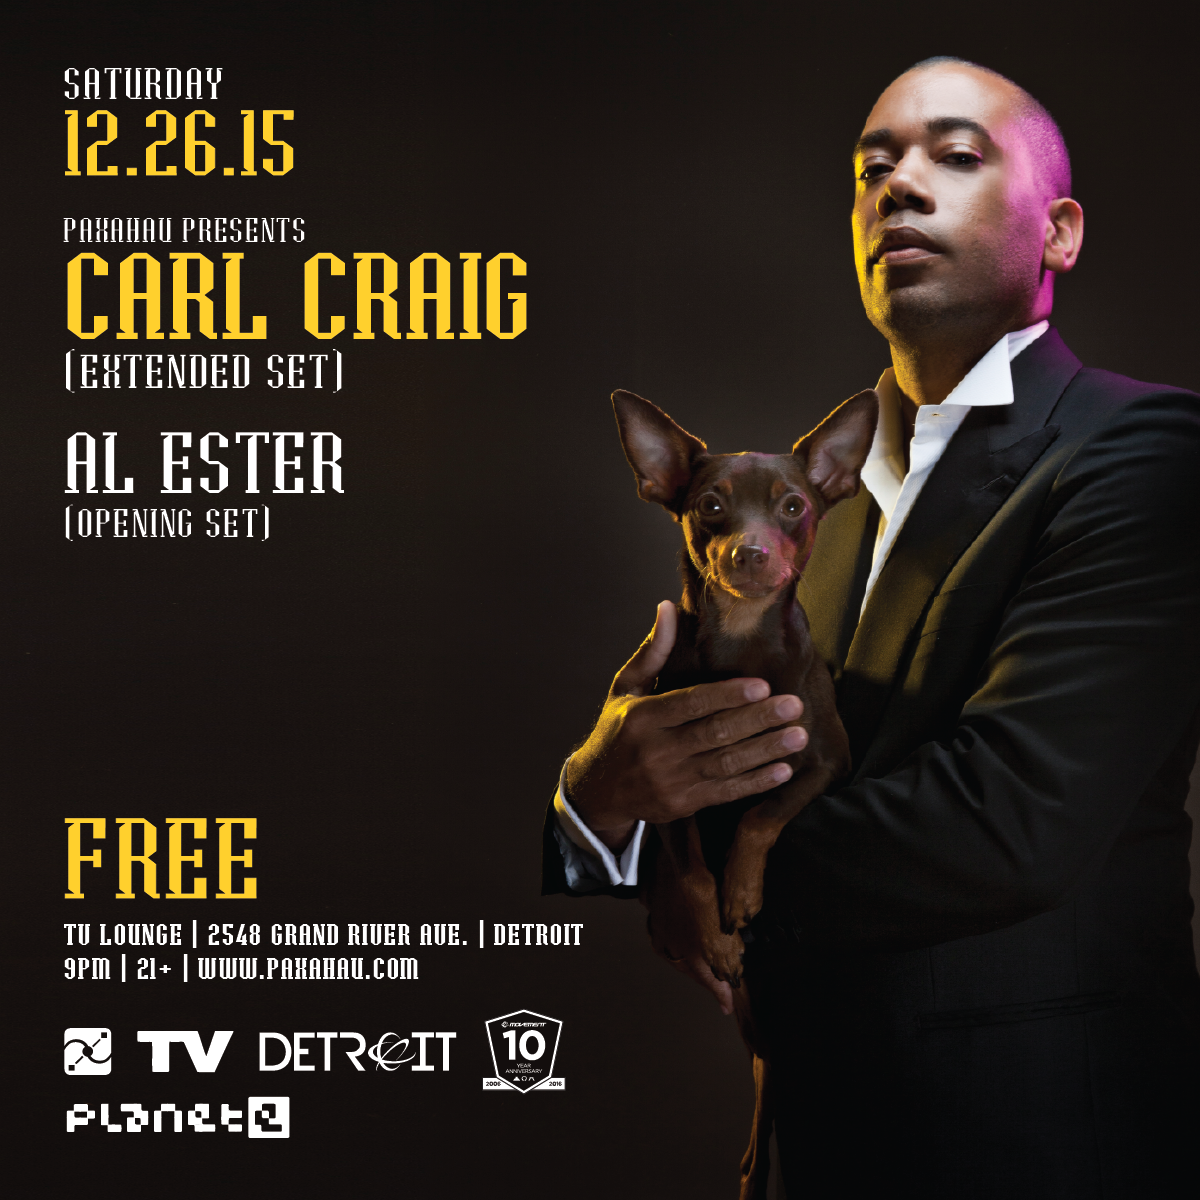 carl-craig_square_colorz-01